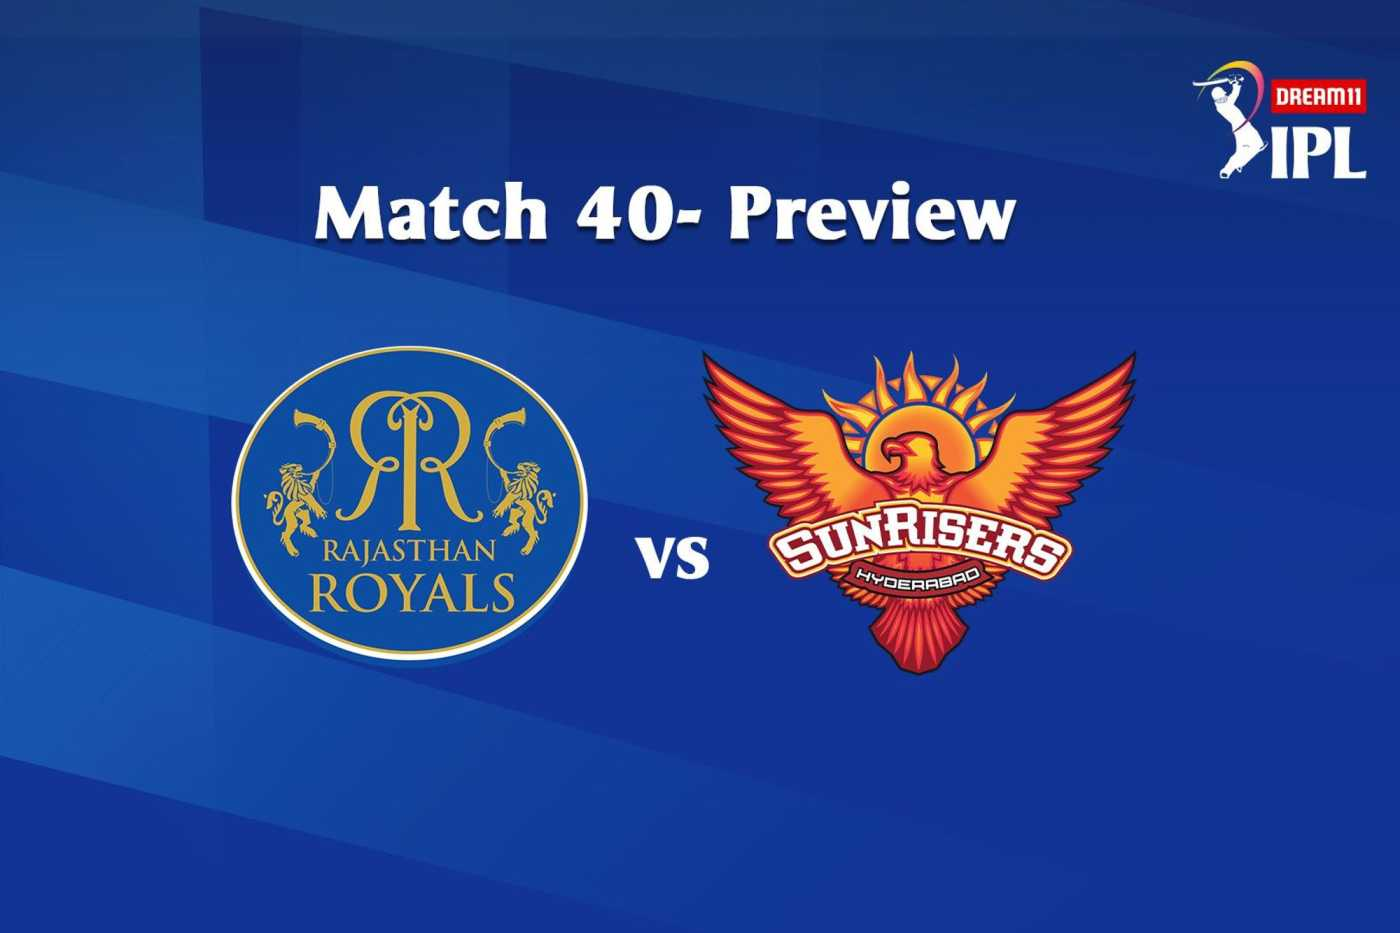 IPL 2020, Match 40: Rajasthan Royals To Face SunRisers Hyderabad, See Head-To-Head Stats and Match Winner Prediction